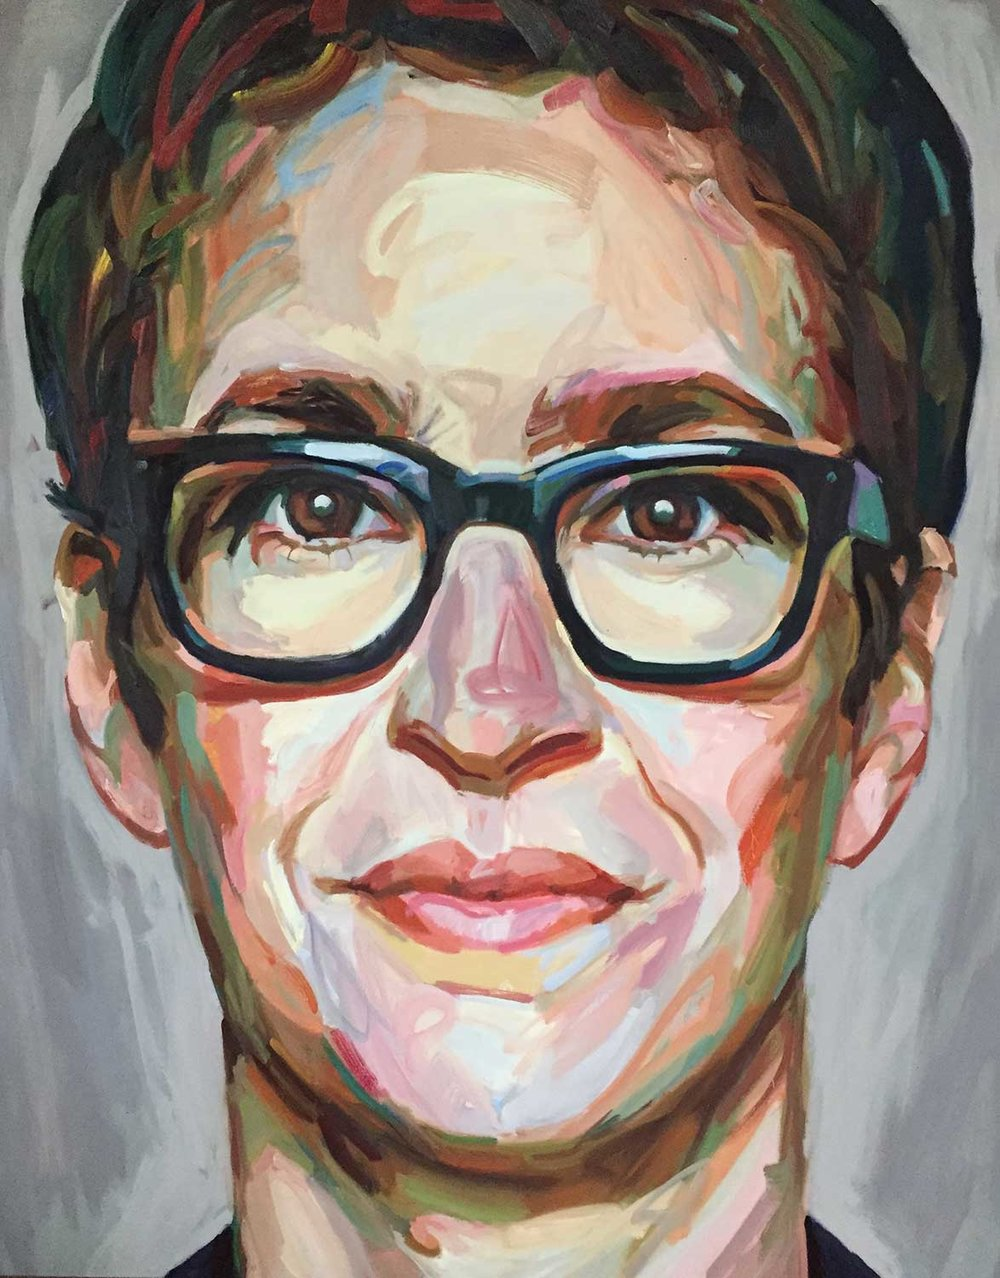 Jo Hay, Maddow, 2017 Oil on canvas 48x60""